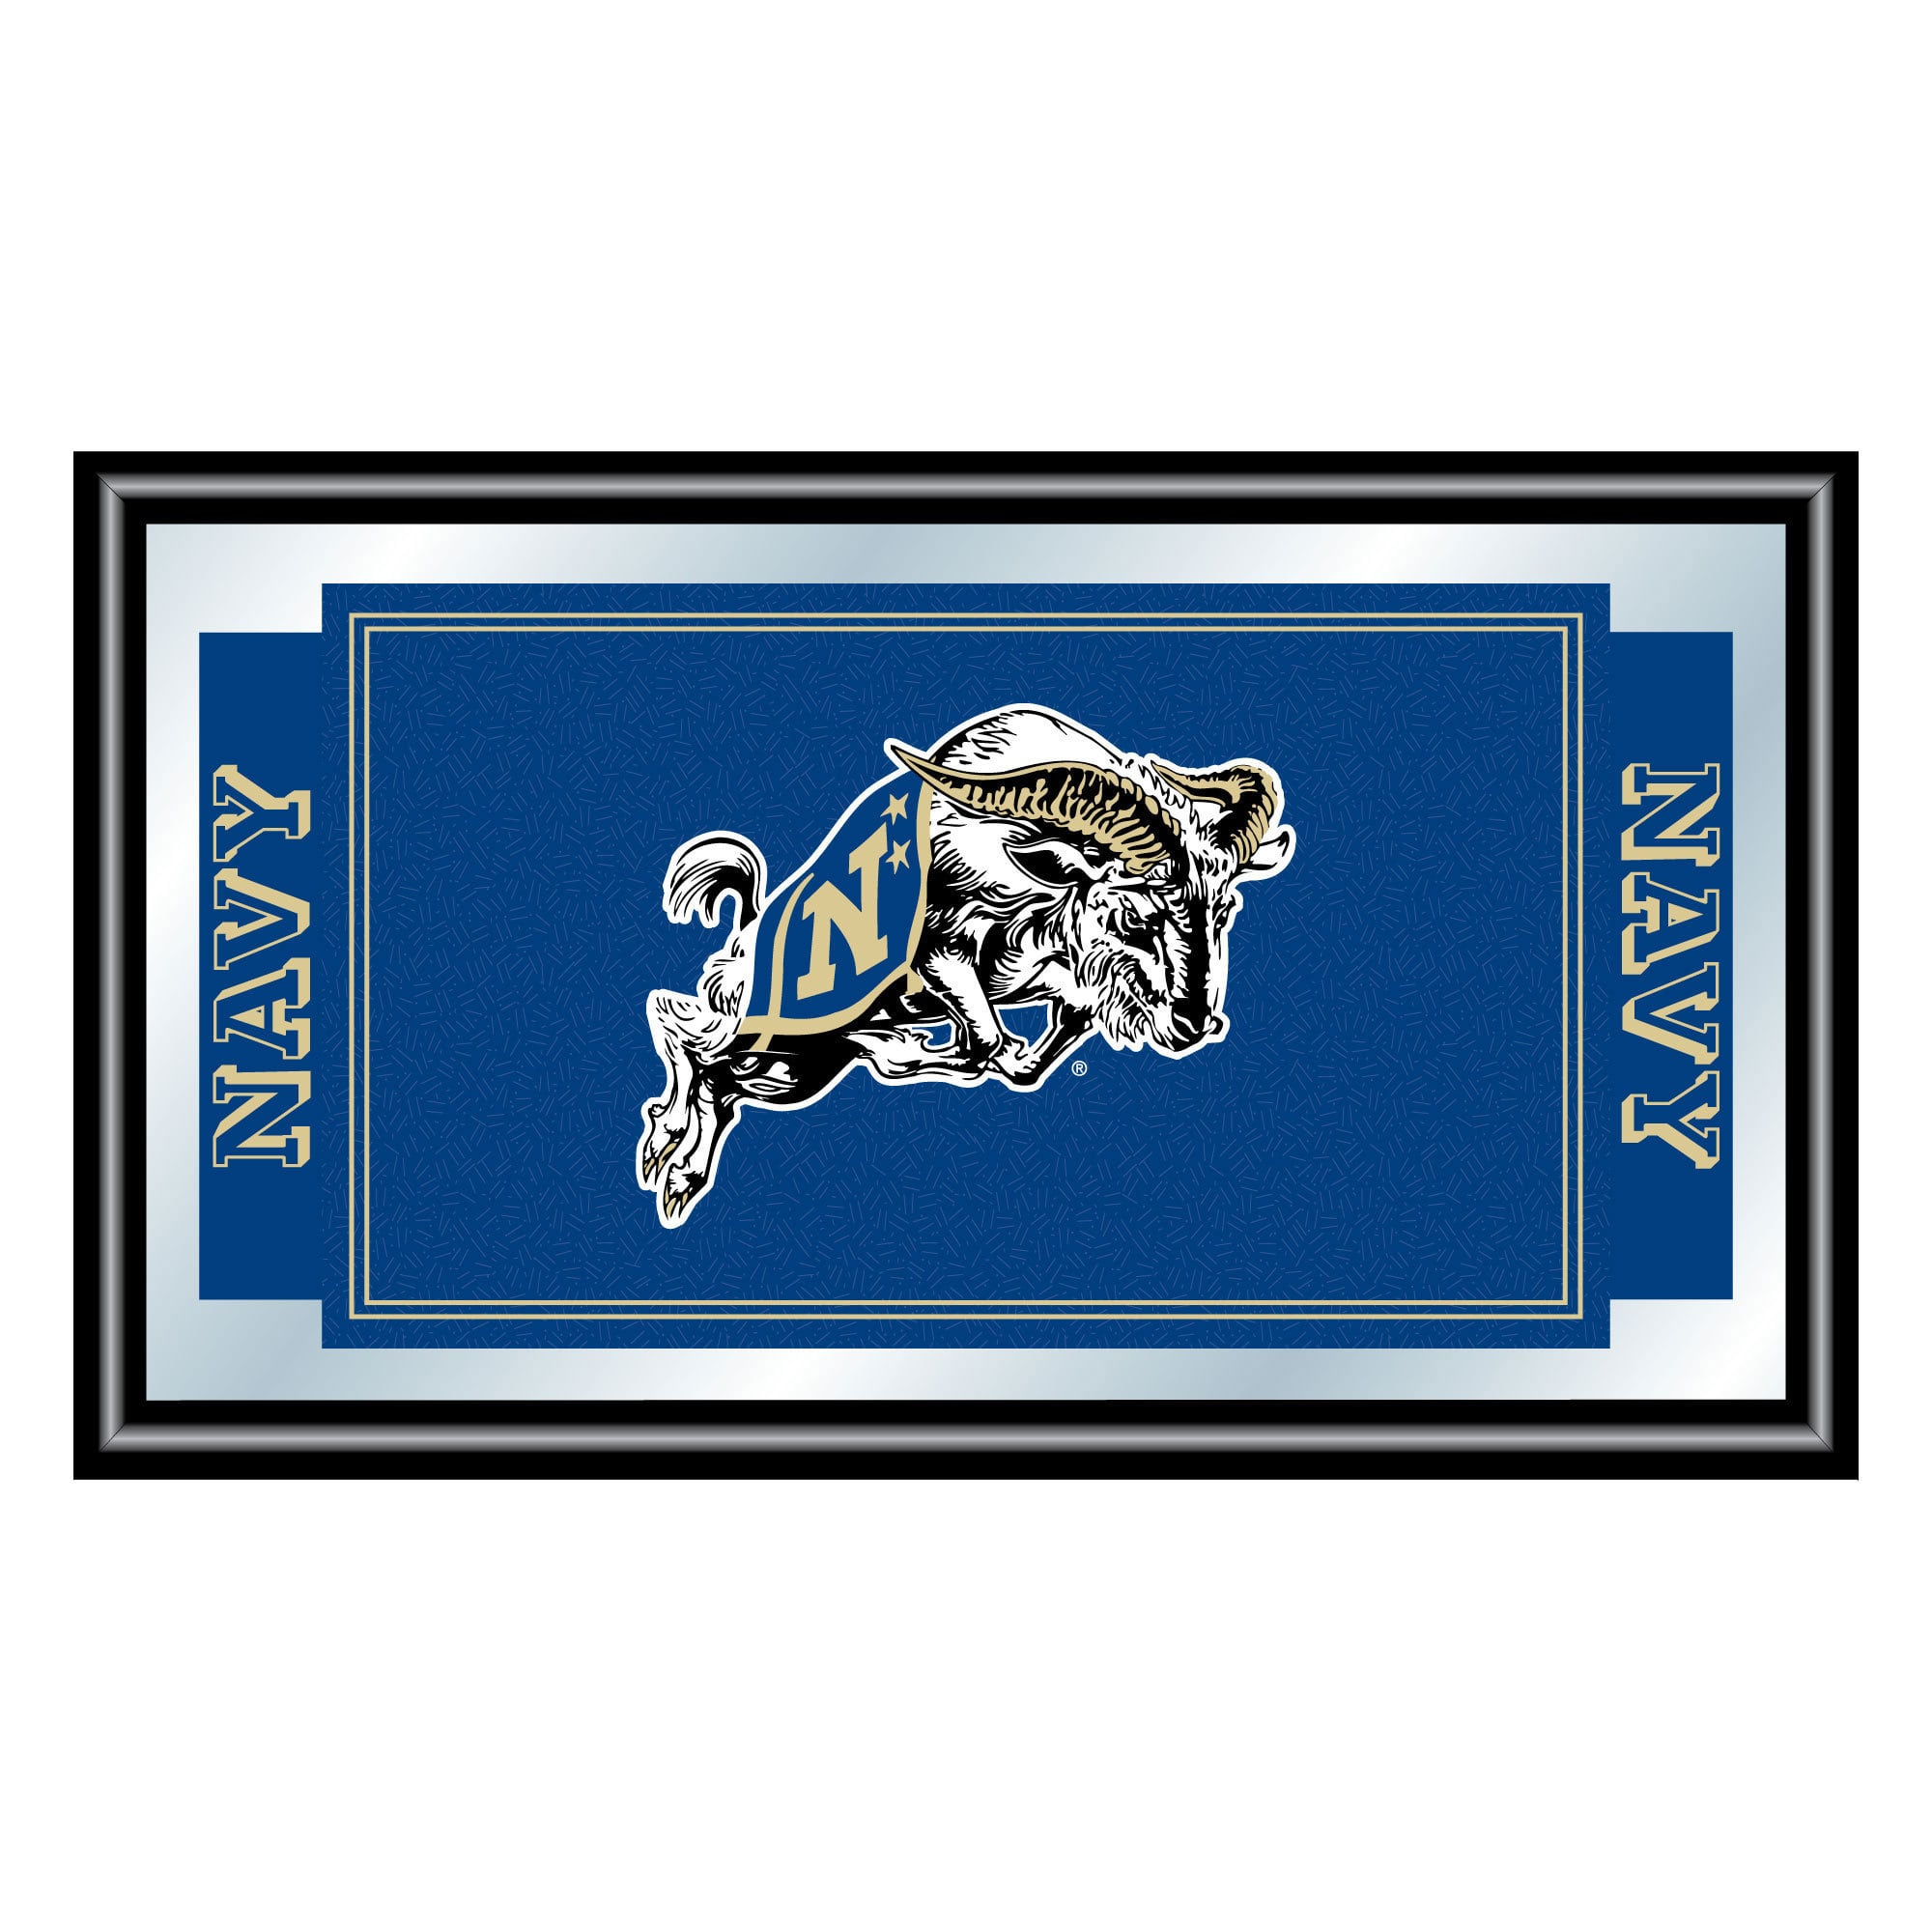 Trademark Gameroom United States Naval Academy Logo and Mascot Framed Mirror